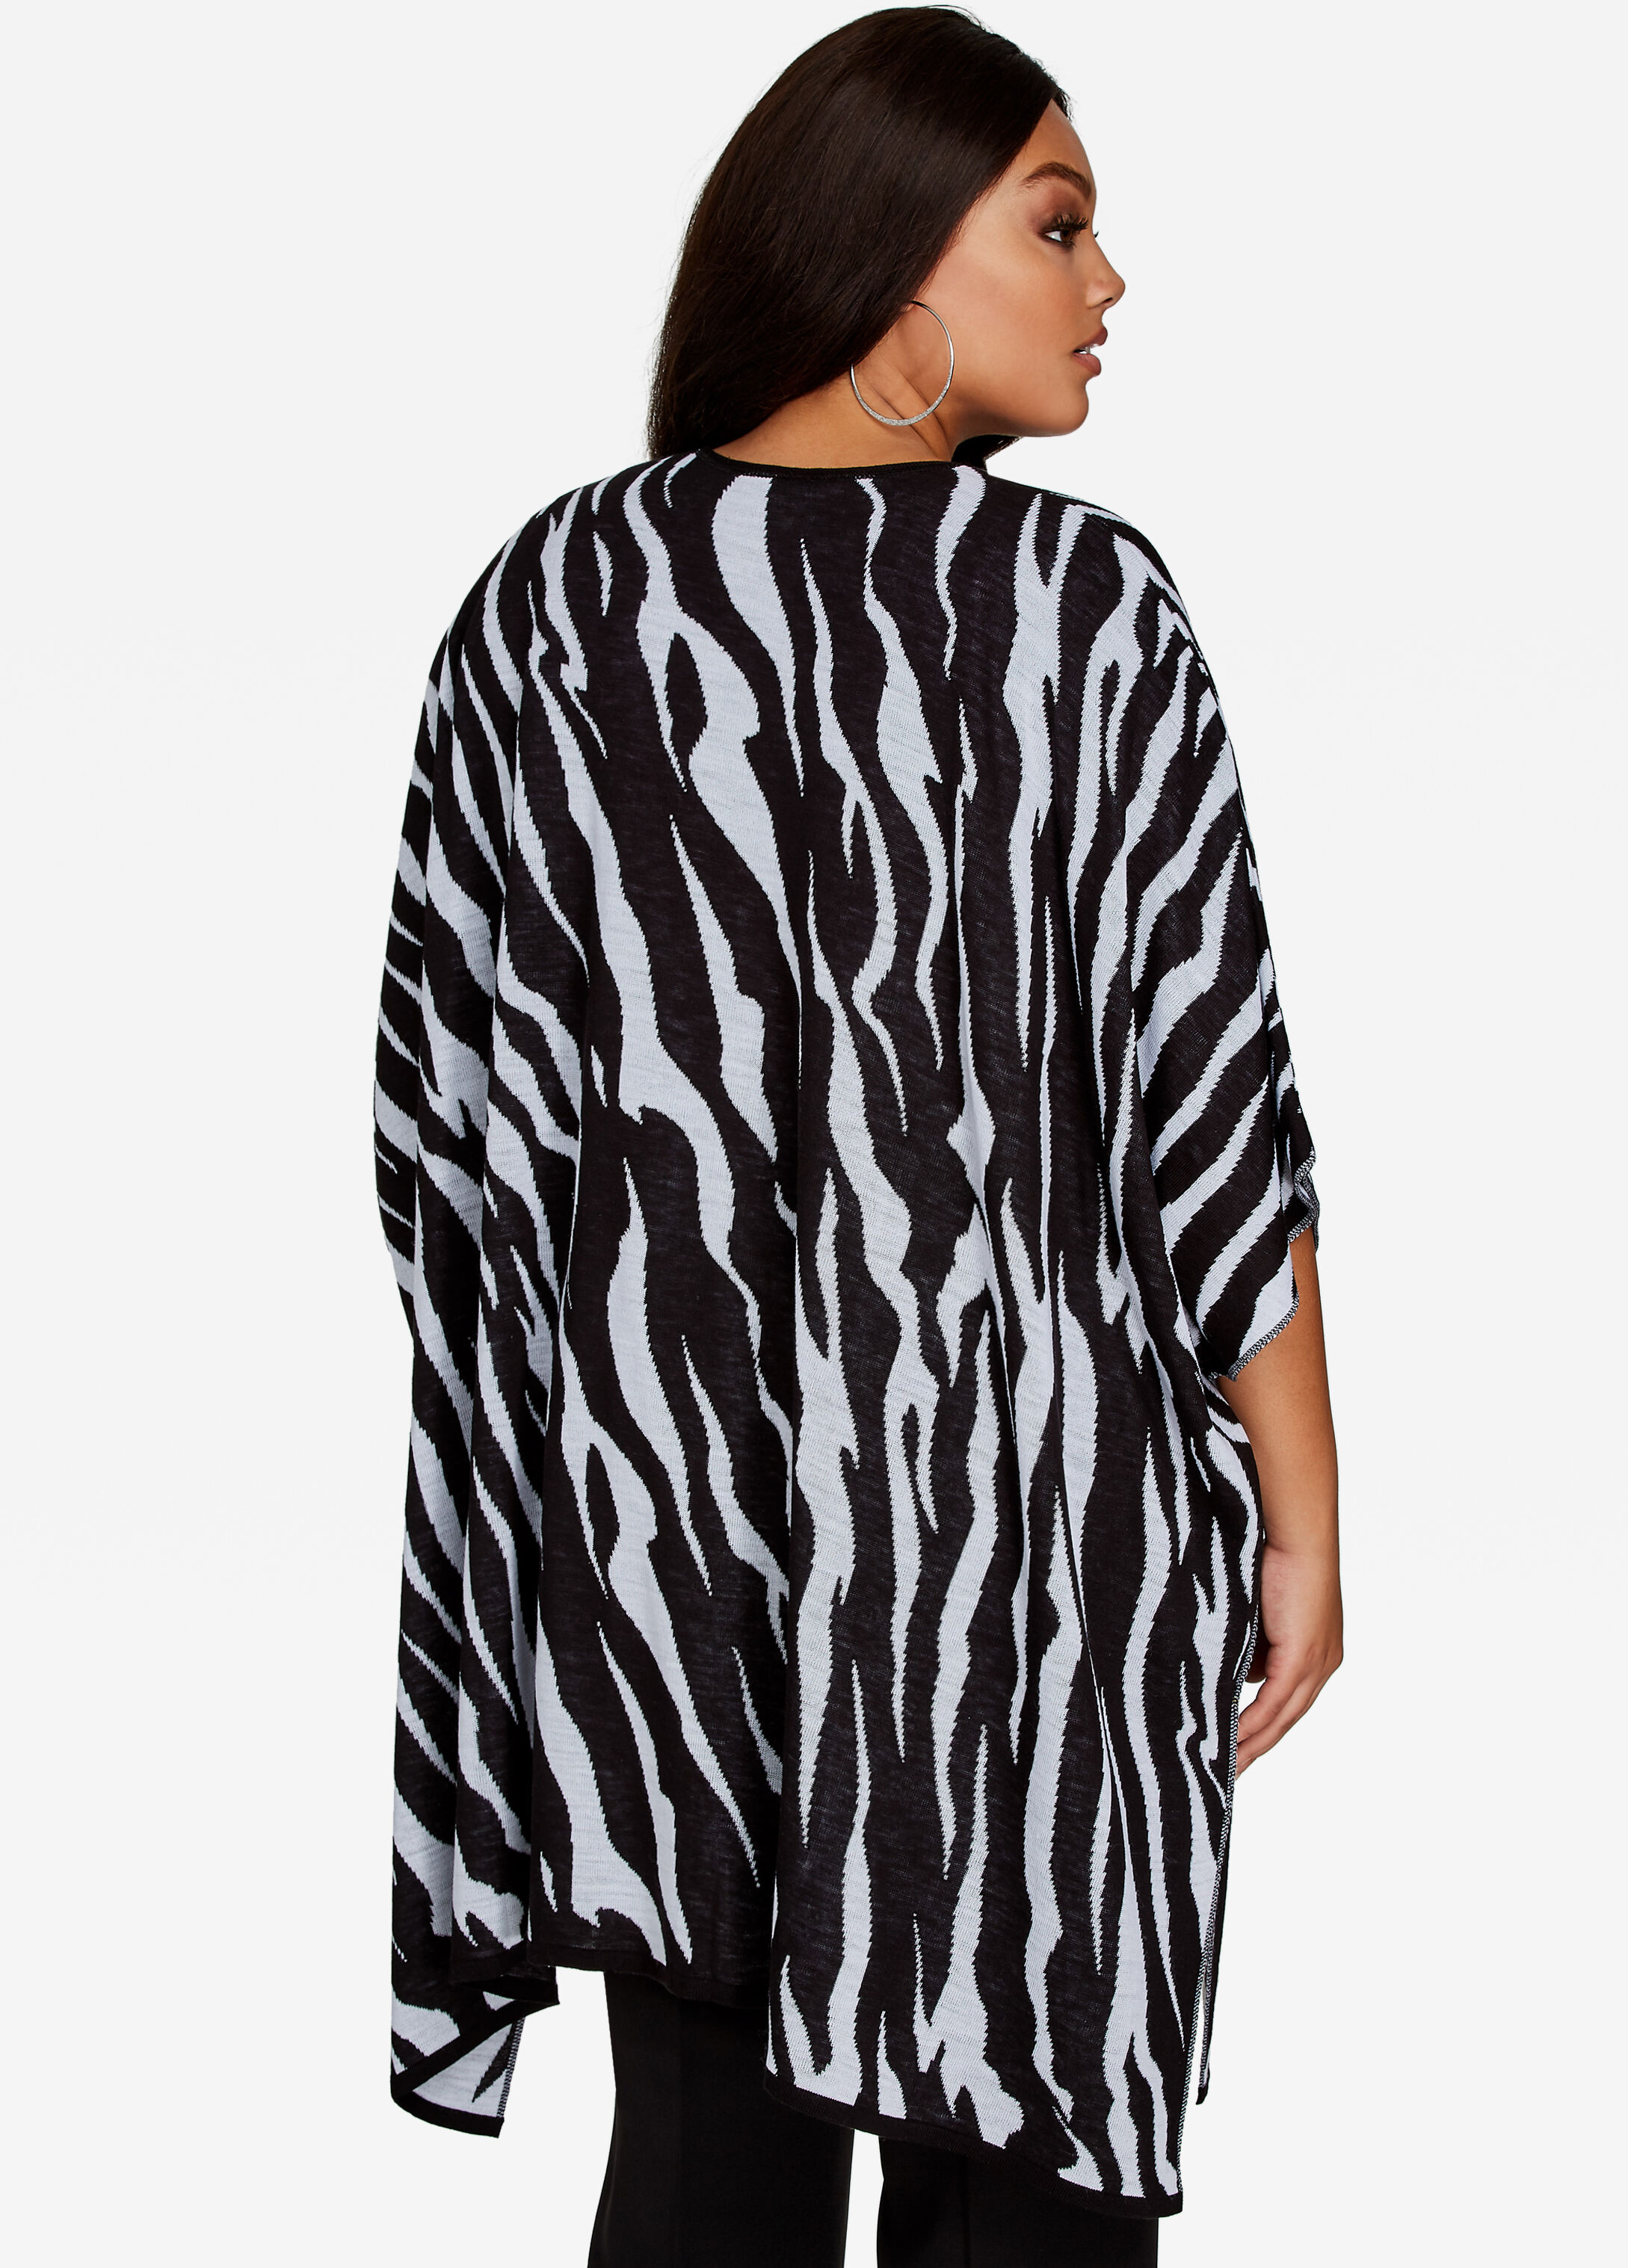 Animal Print Open Front Knit Cardigan Kimono - Plus Size Sweaters ...